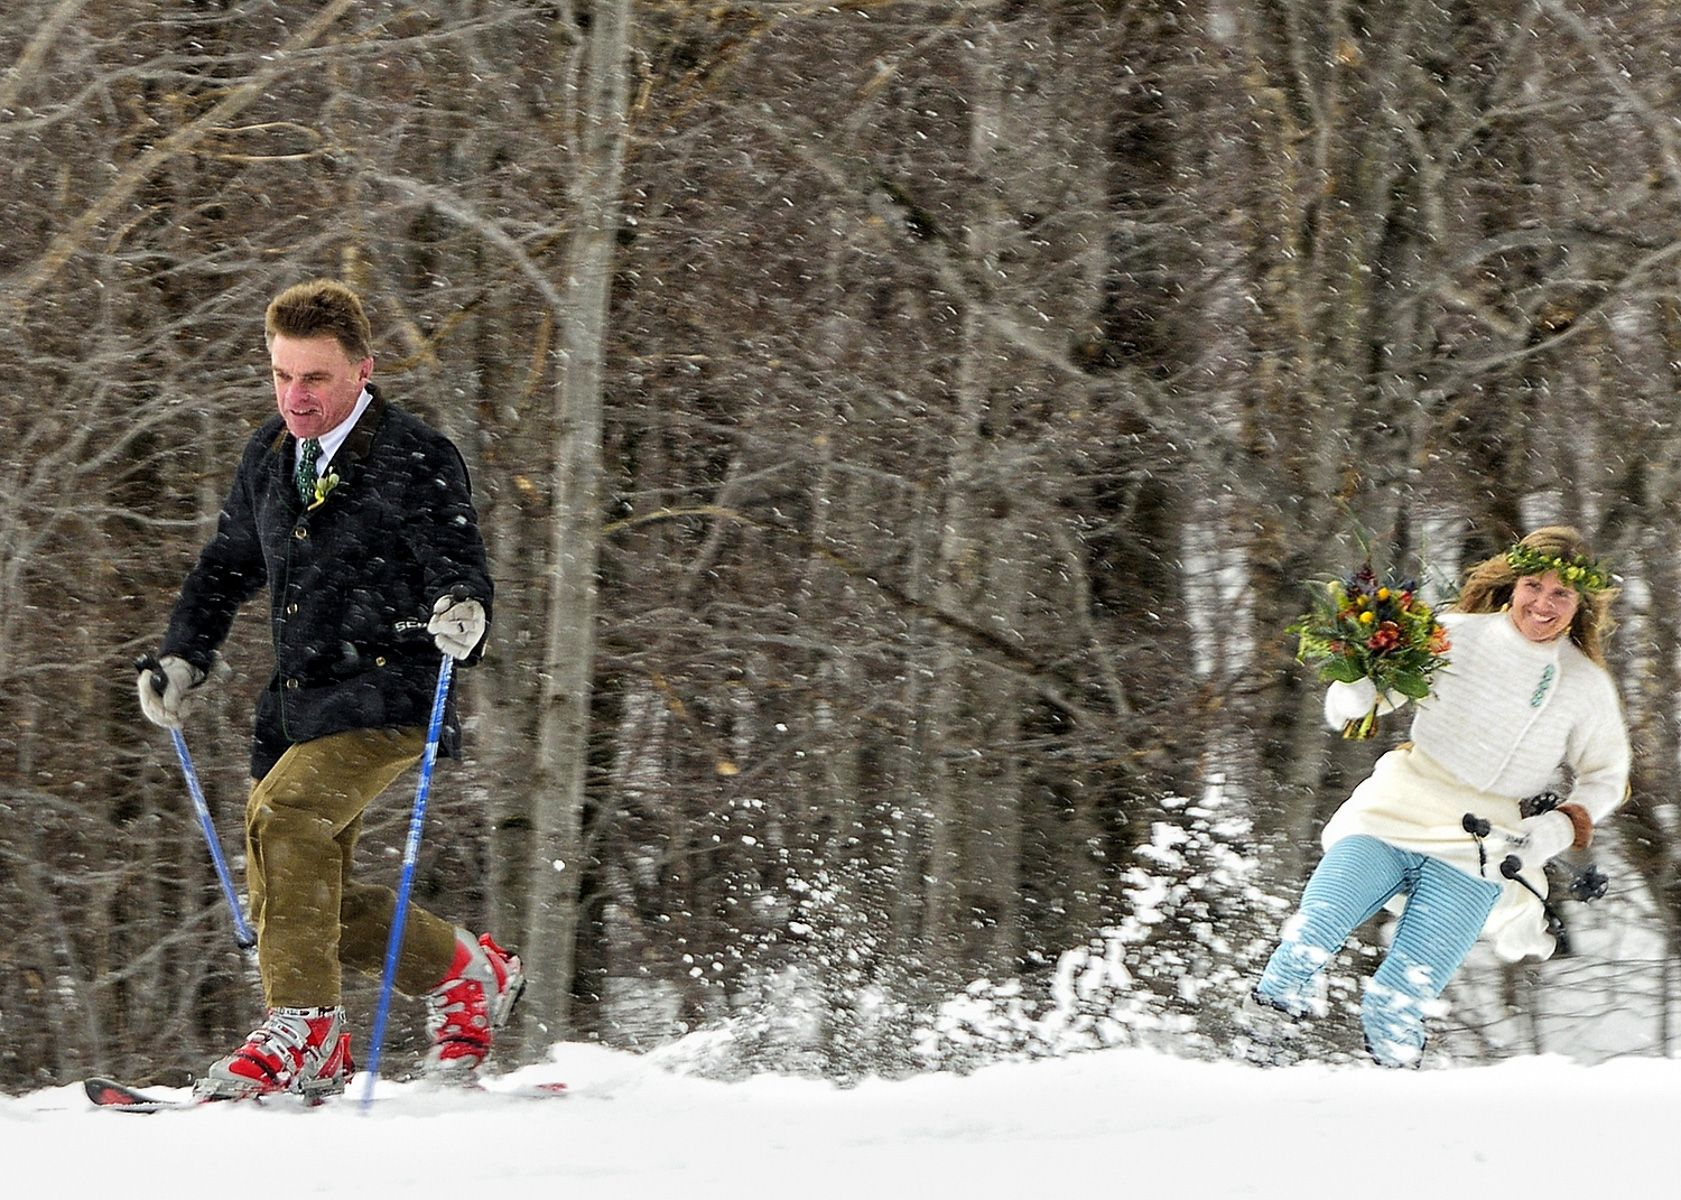 Skiing Bride  In Vermont